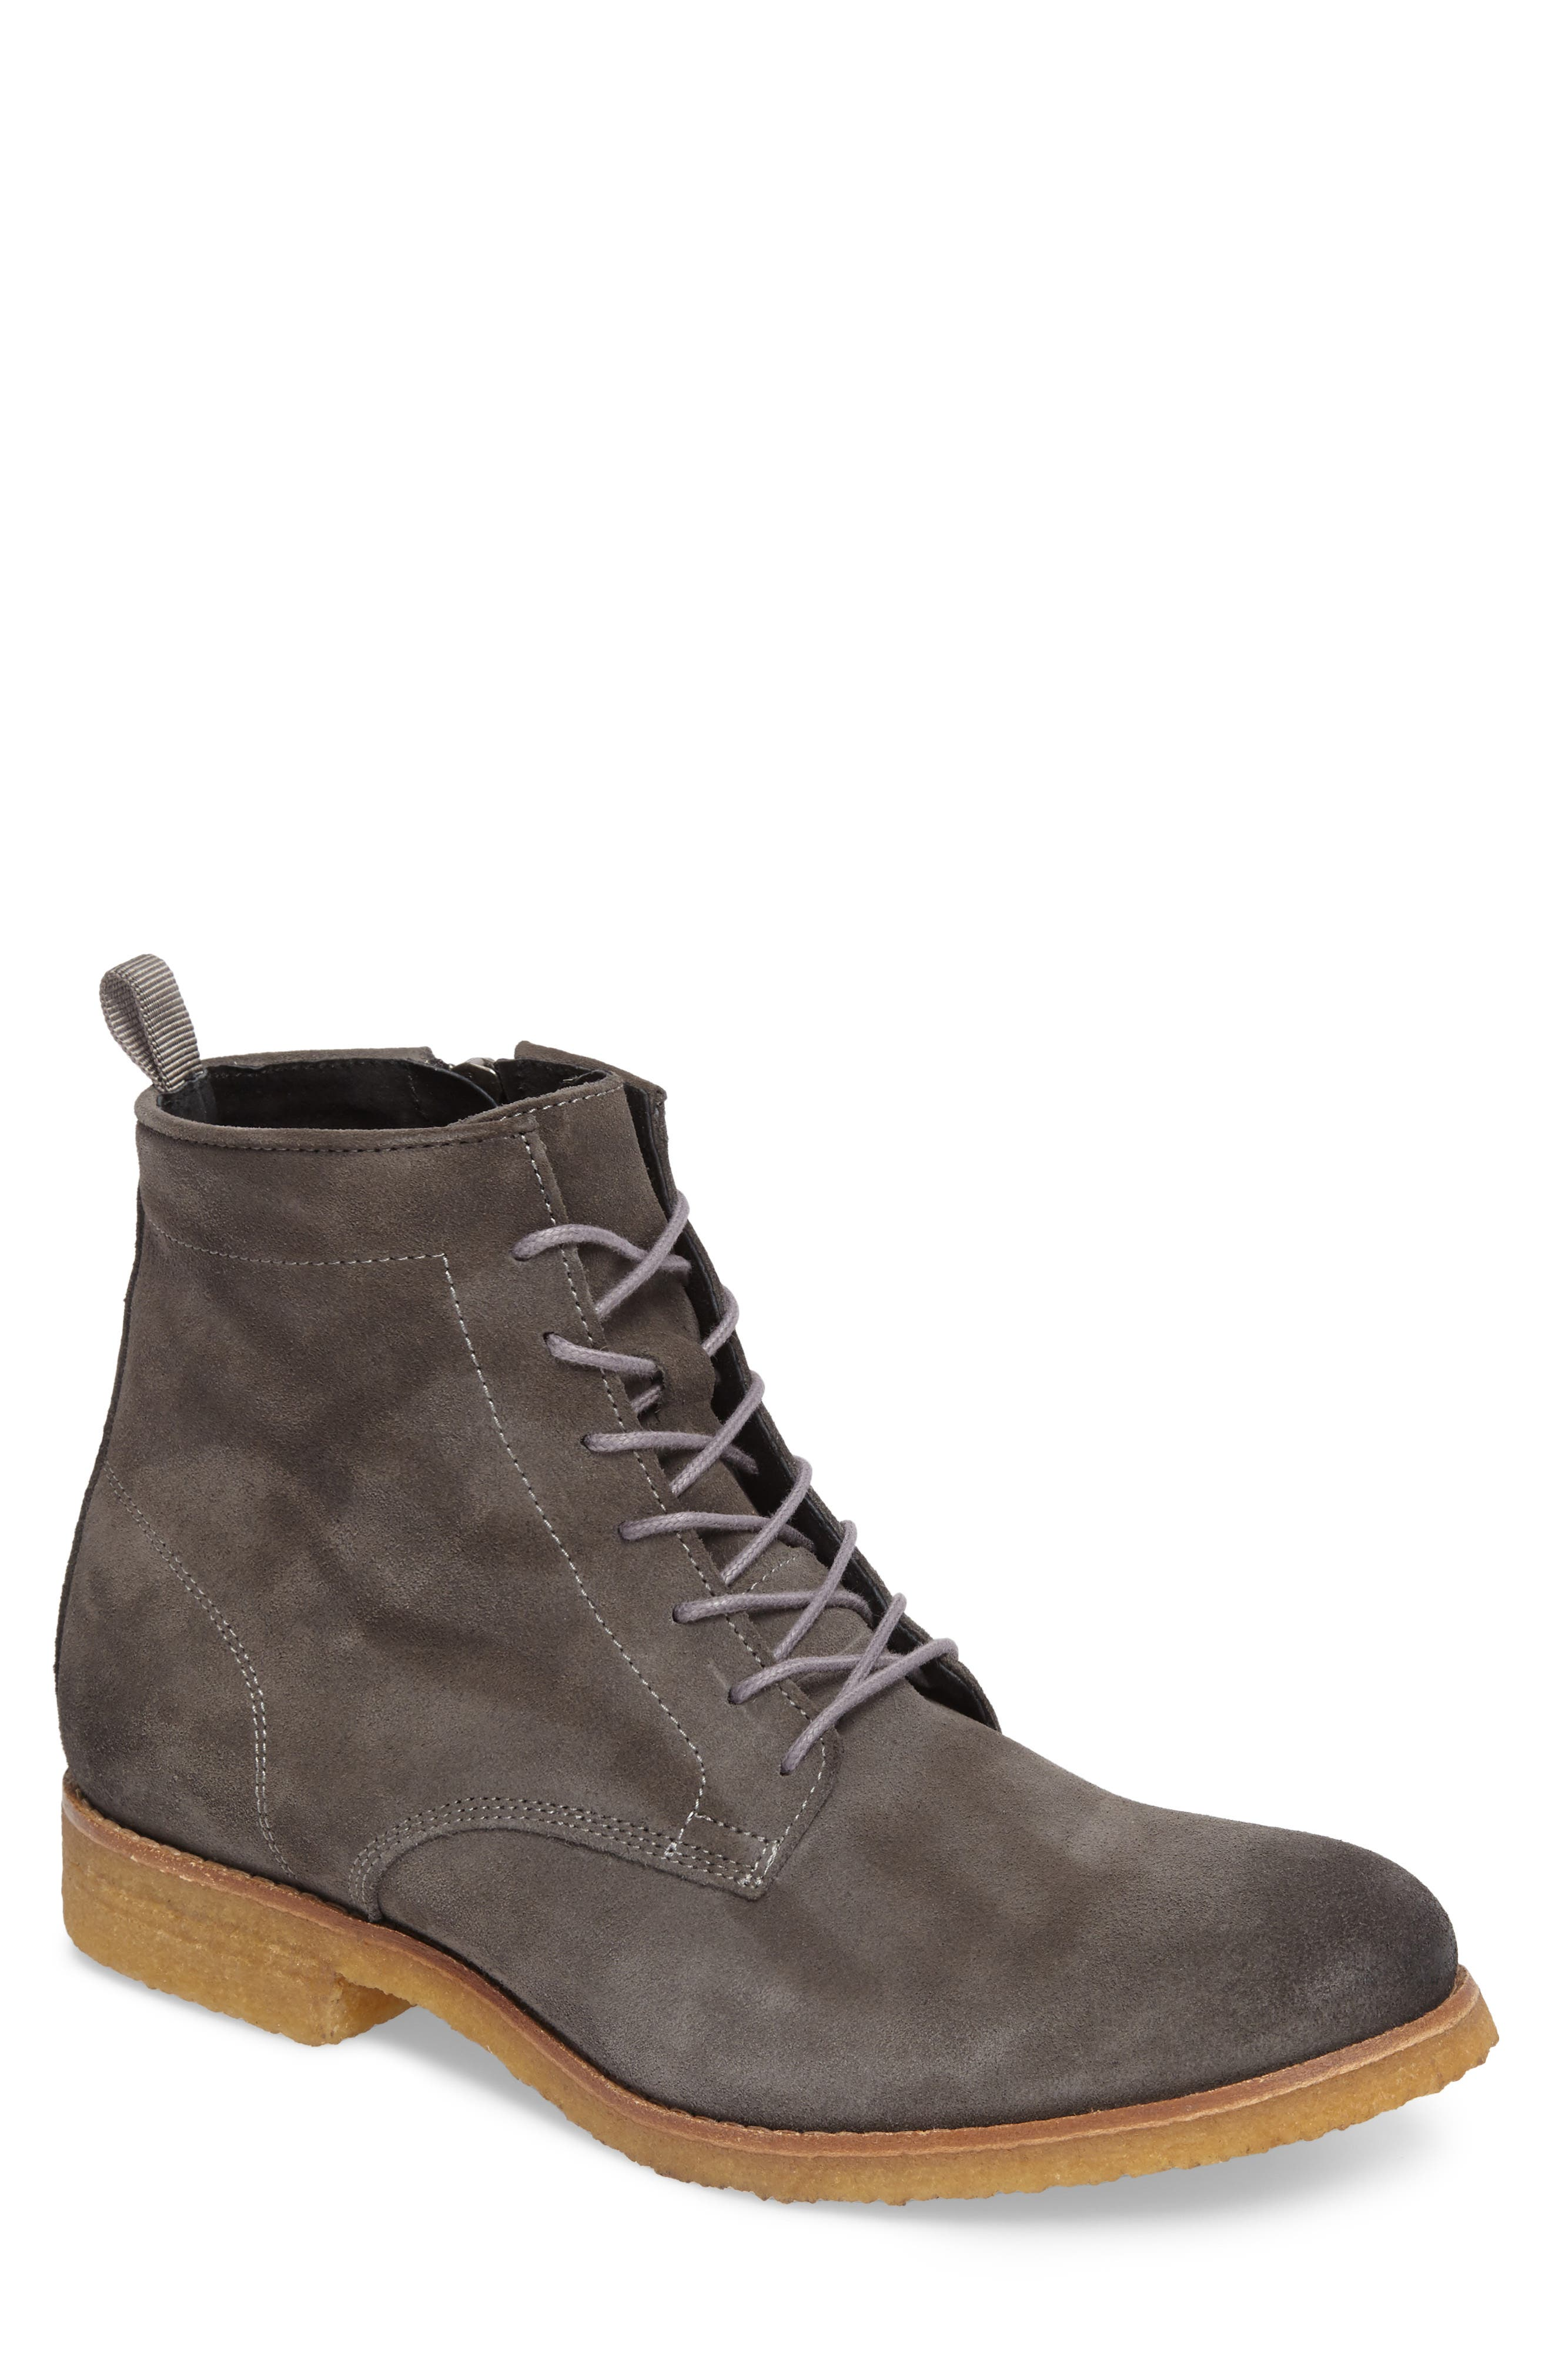 Main Image - Supply Lab Jonah Plain Toe Boot (Men)